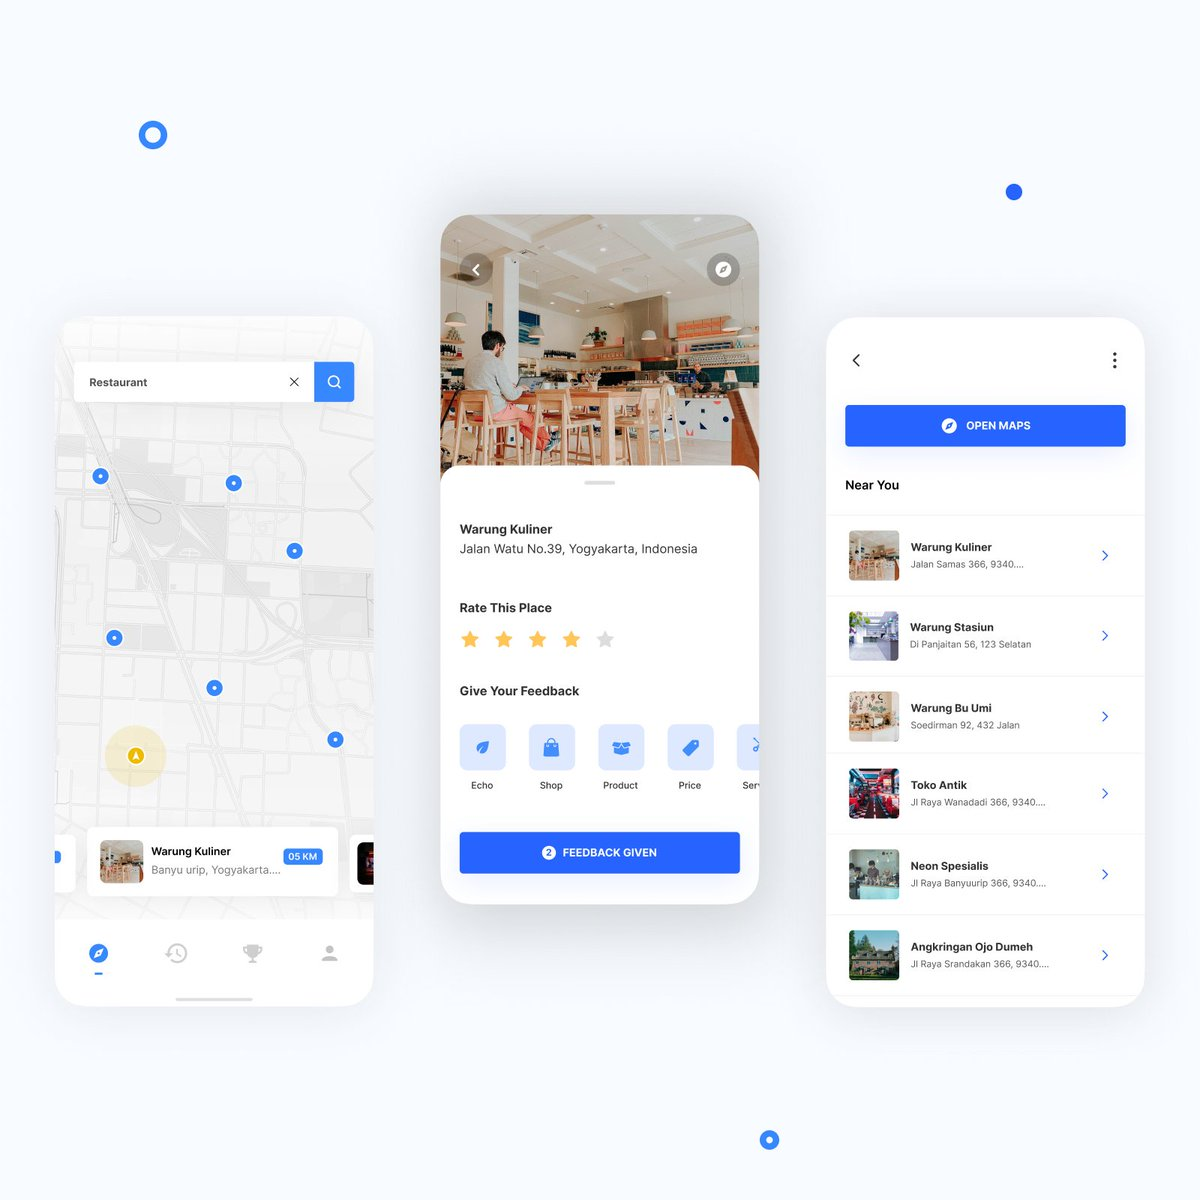 This is our exploration on Store Explorer App that designed by our intern designer @hakimhn_ .  #userinterfacedesign #uidesigner #uxigers #designinspiration #uiinspiration #interface #dailyui #uidesignpatterns #portfolio #dribbblers #dailyinspiration #uiuxsupply #instauiuxpic.twitter.com/4DrLC6oNhr